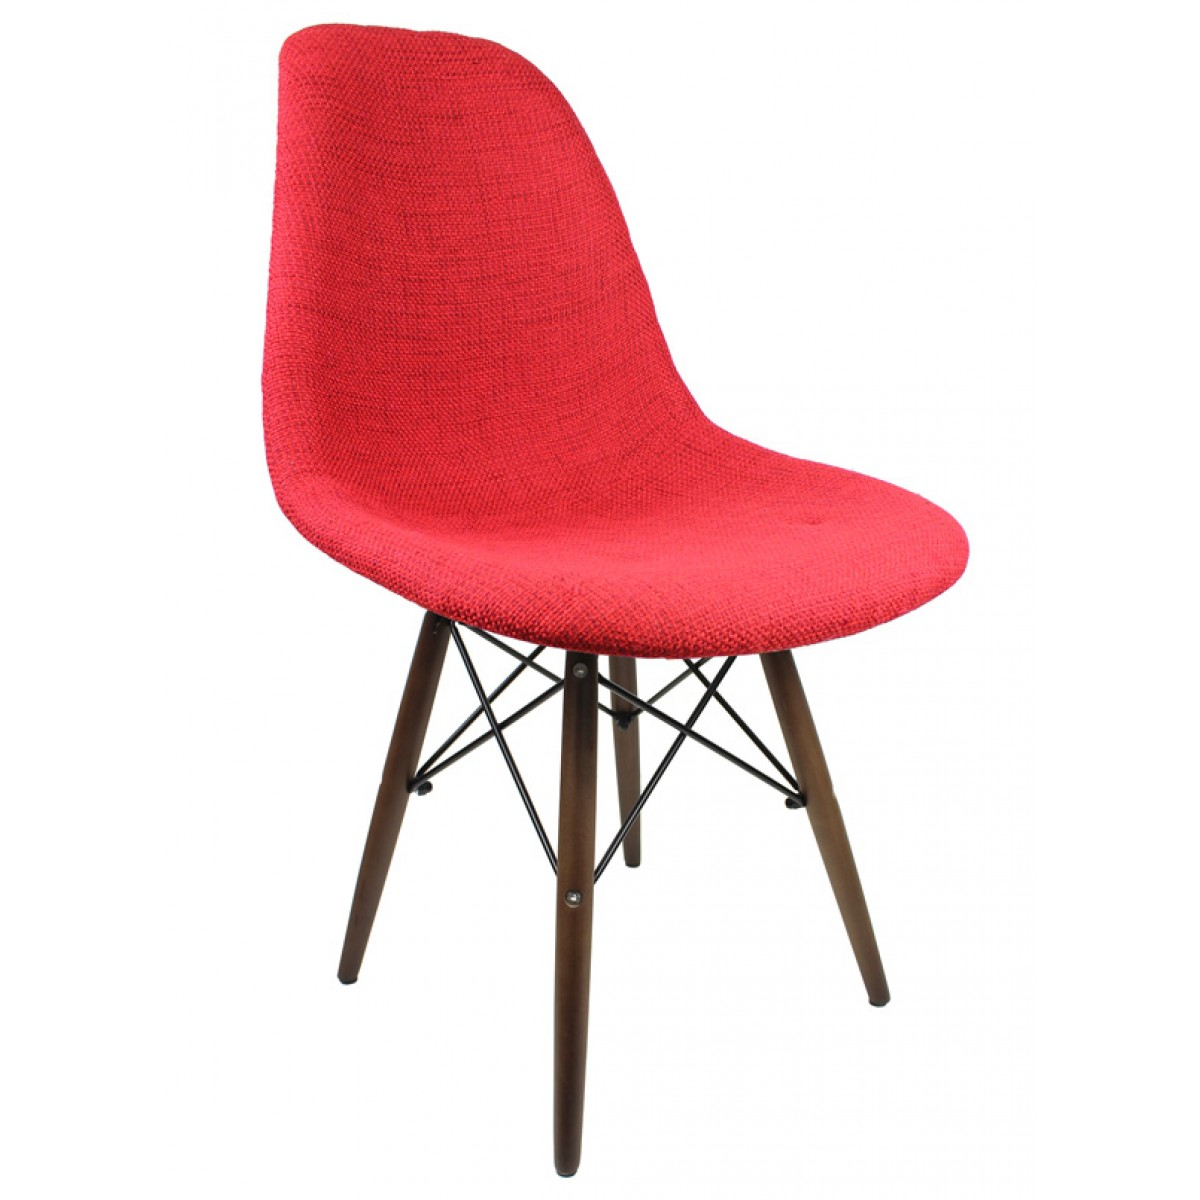 eiffel chair wood legs love bag red fabric upholstered eames style accent with dark